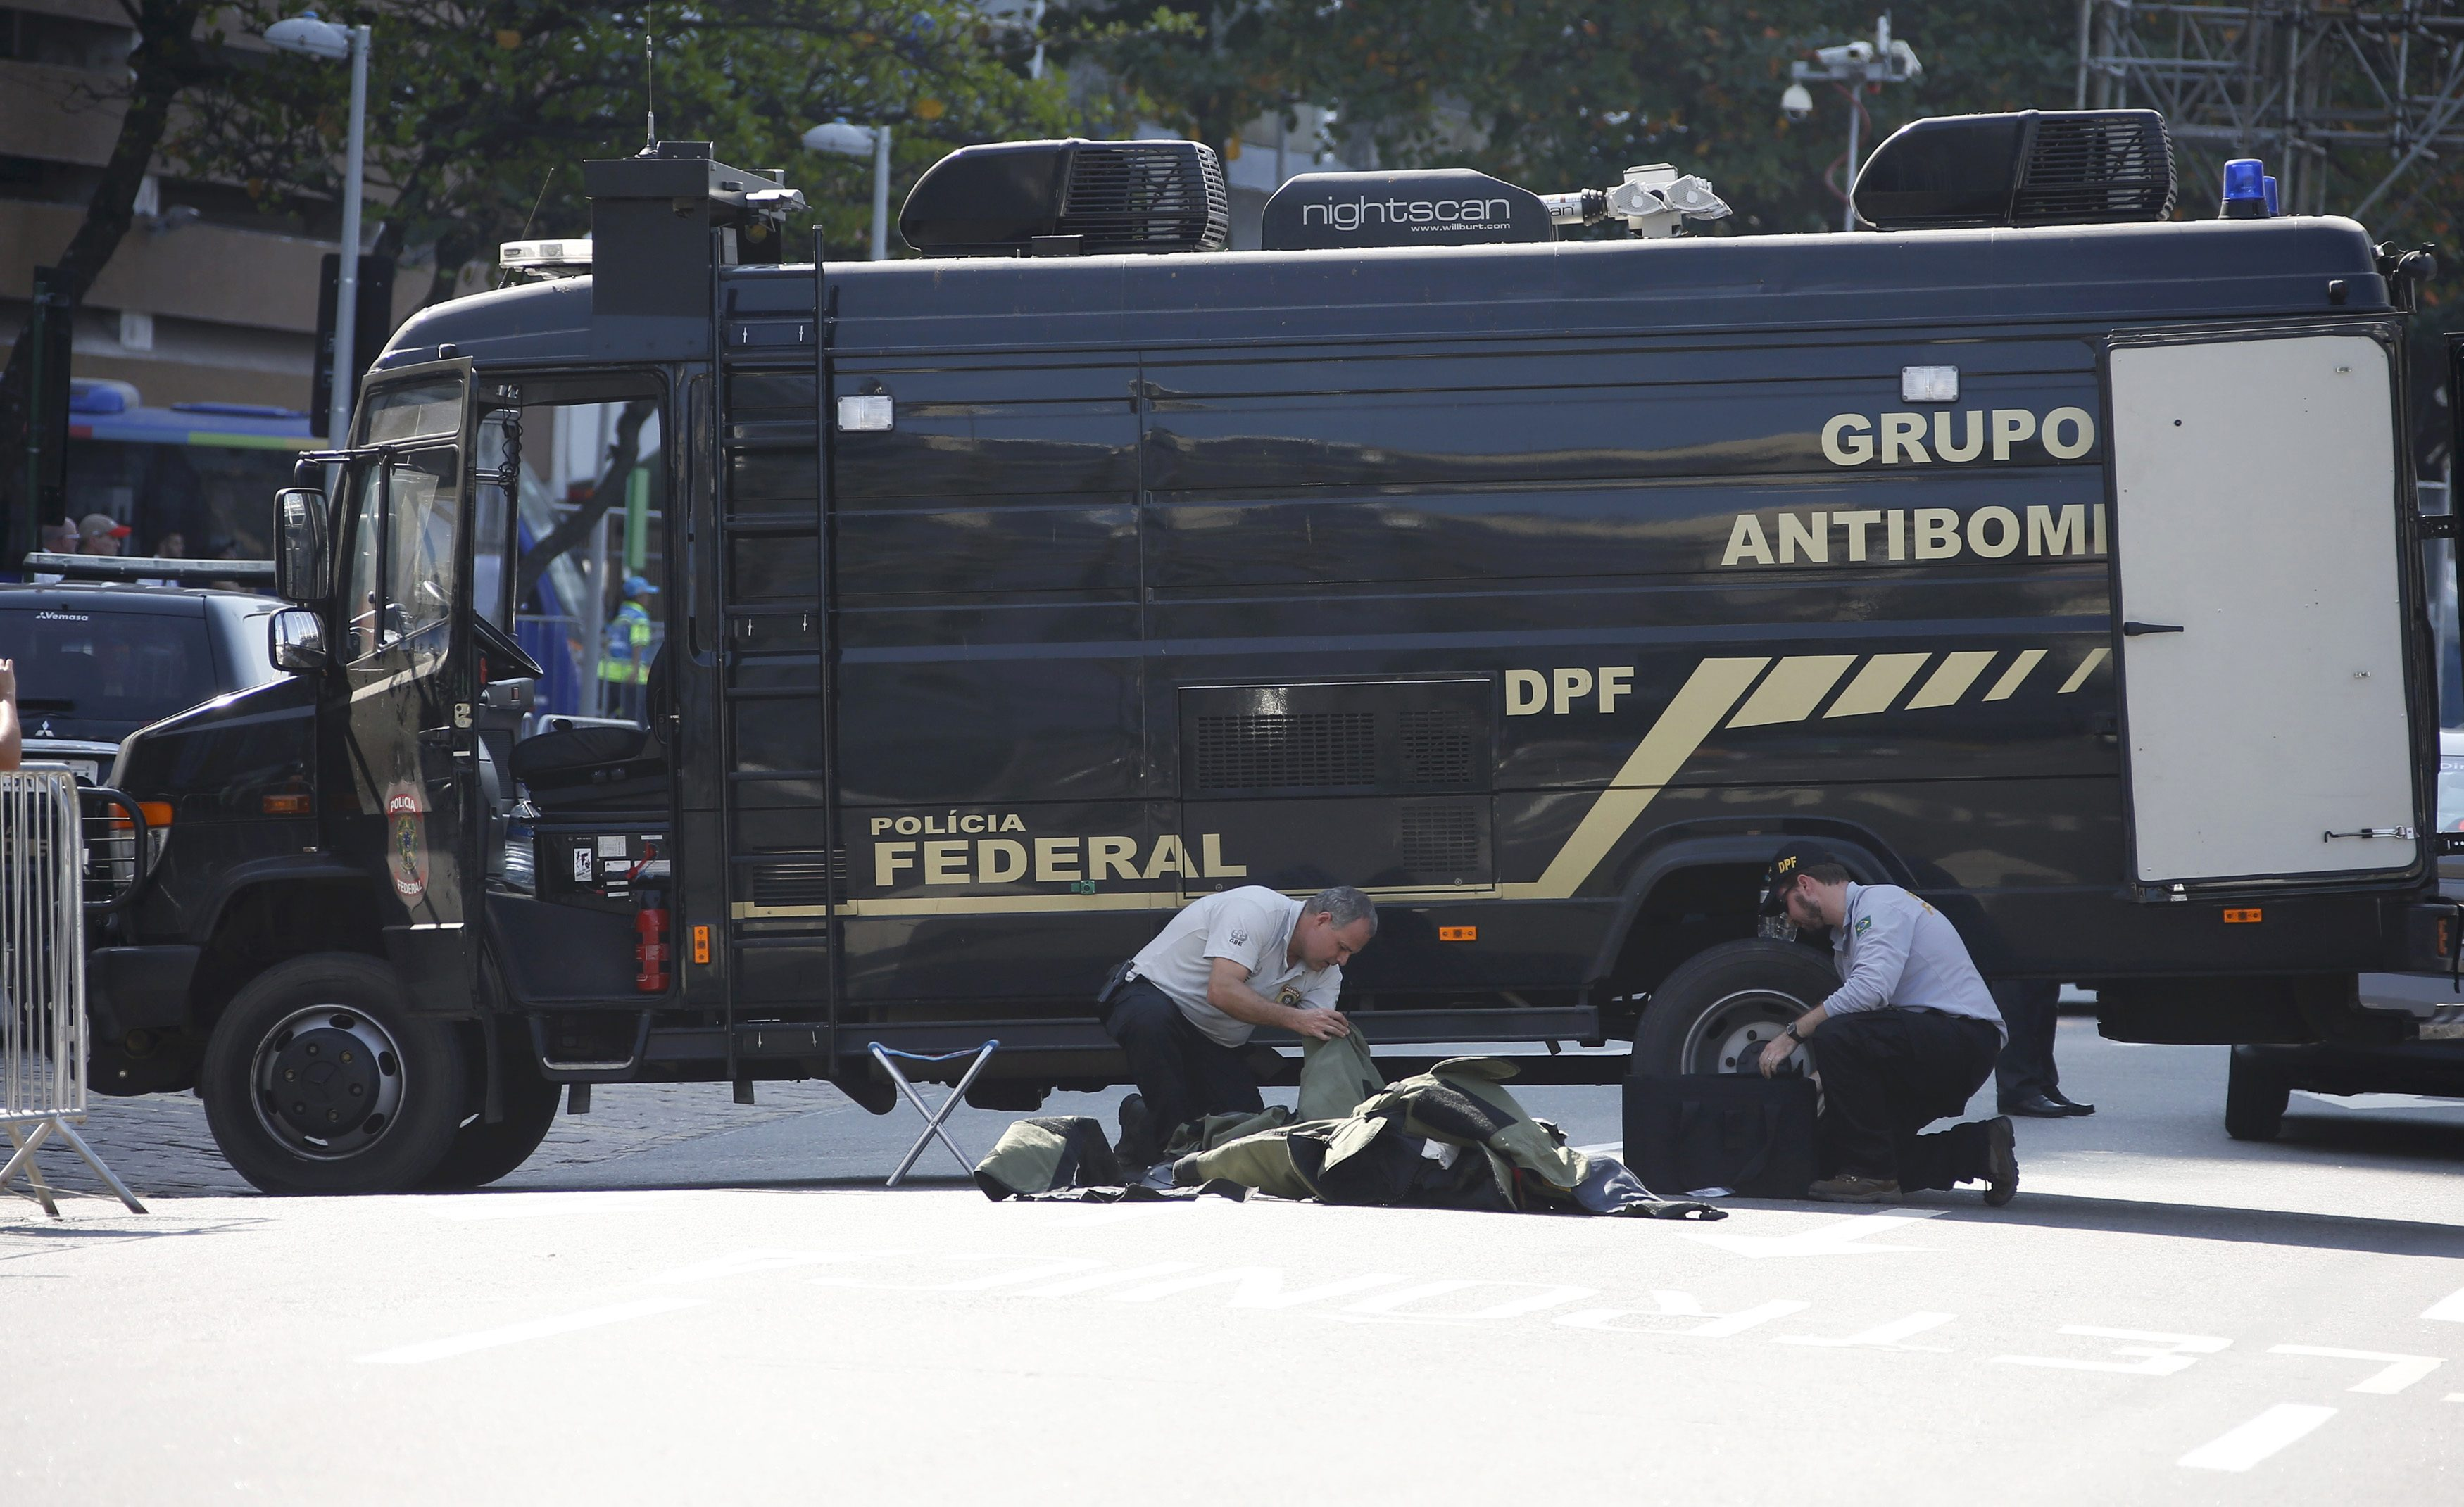 Rio bomb squad blows up backpack near cycling course: official